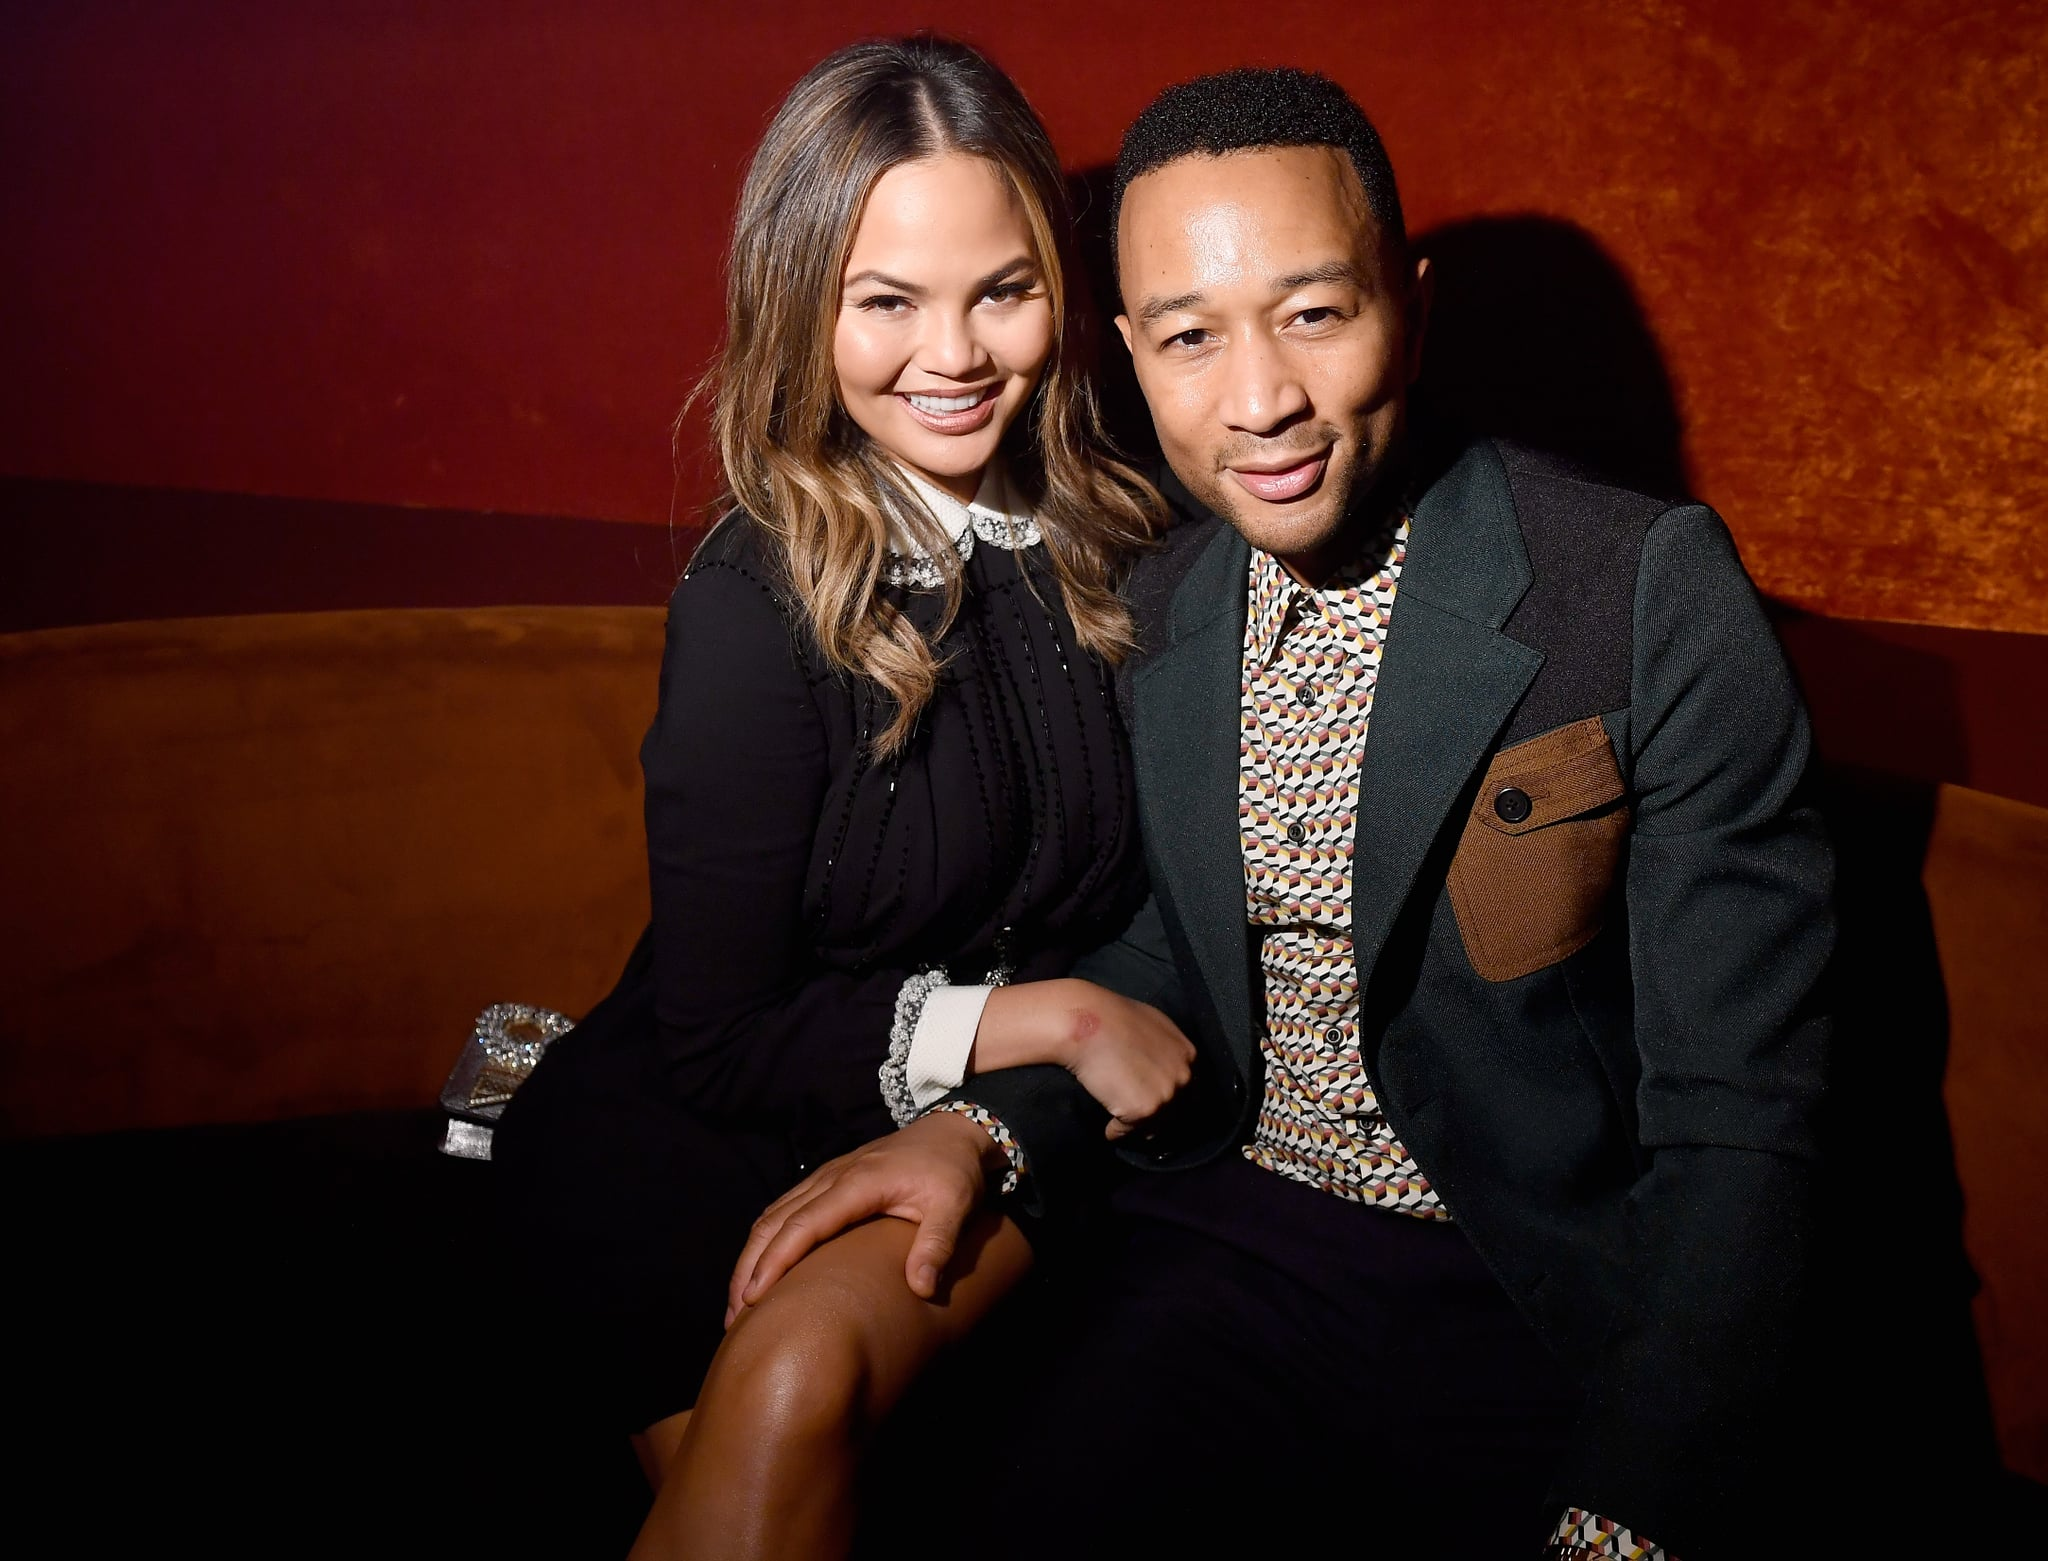 PARIS, FRANCE - OCTOBER 03: Chrissy Teigen and John Legend attends the Miu Miu aftershow party as part of the Paris Fashion Week Womenswear  Spring/Summer 2018 at Boum Boum on October 3, 2017 in Paris, France.  (Photo by Victor Boyko/Getty Images)